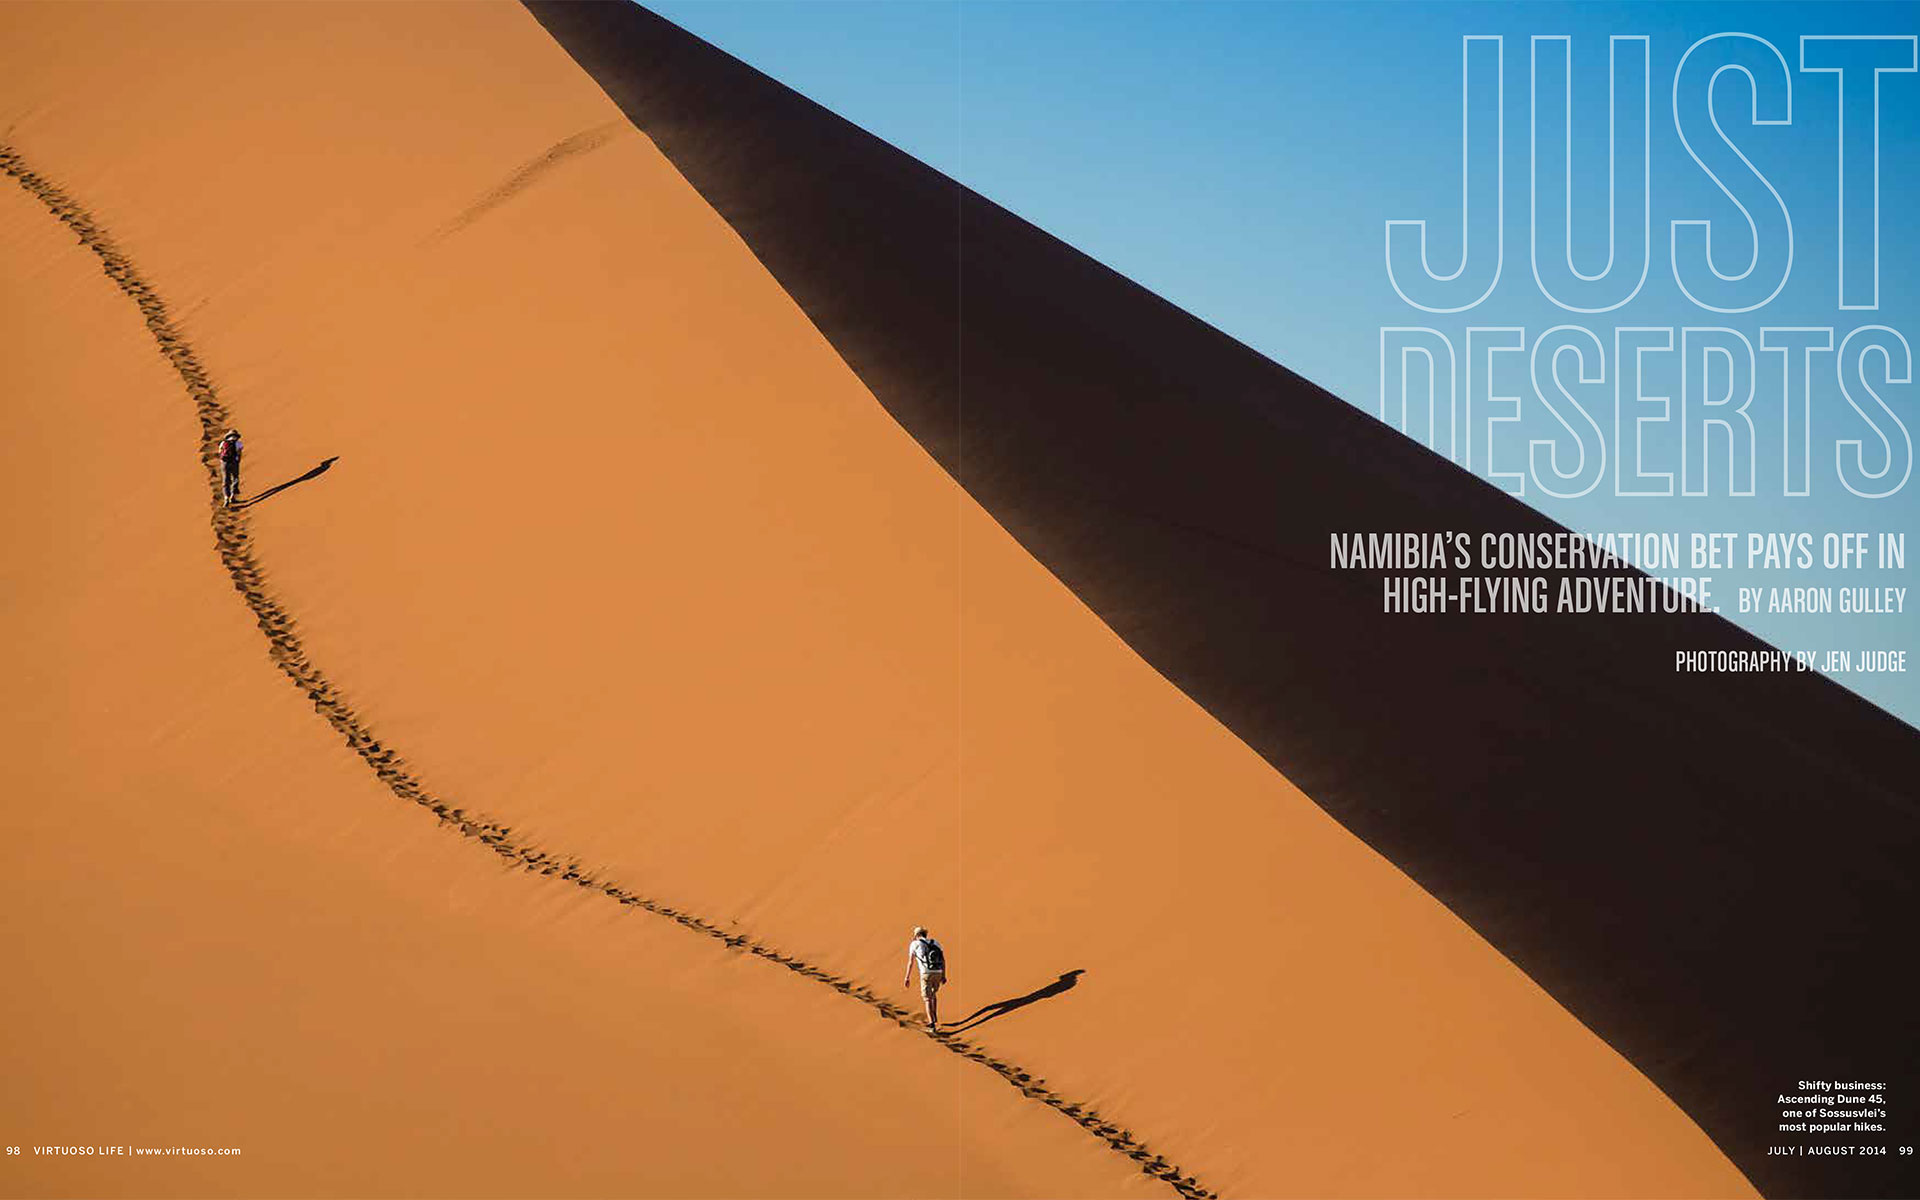 "<p style=""text-align: center;""><b><font color=""2a2871"">Just Deserts, Virtuoso Life, July 2014</font></b>